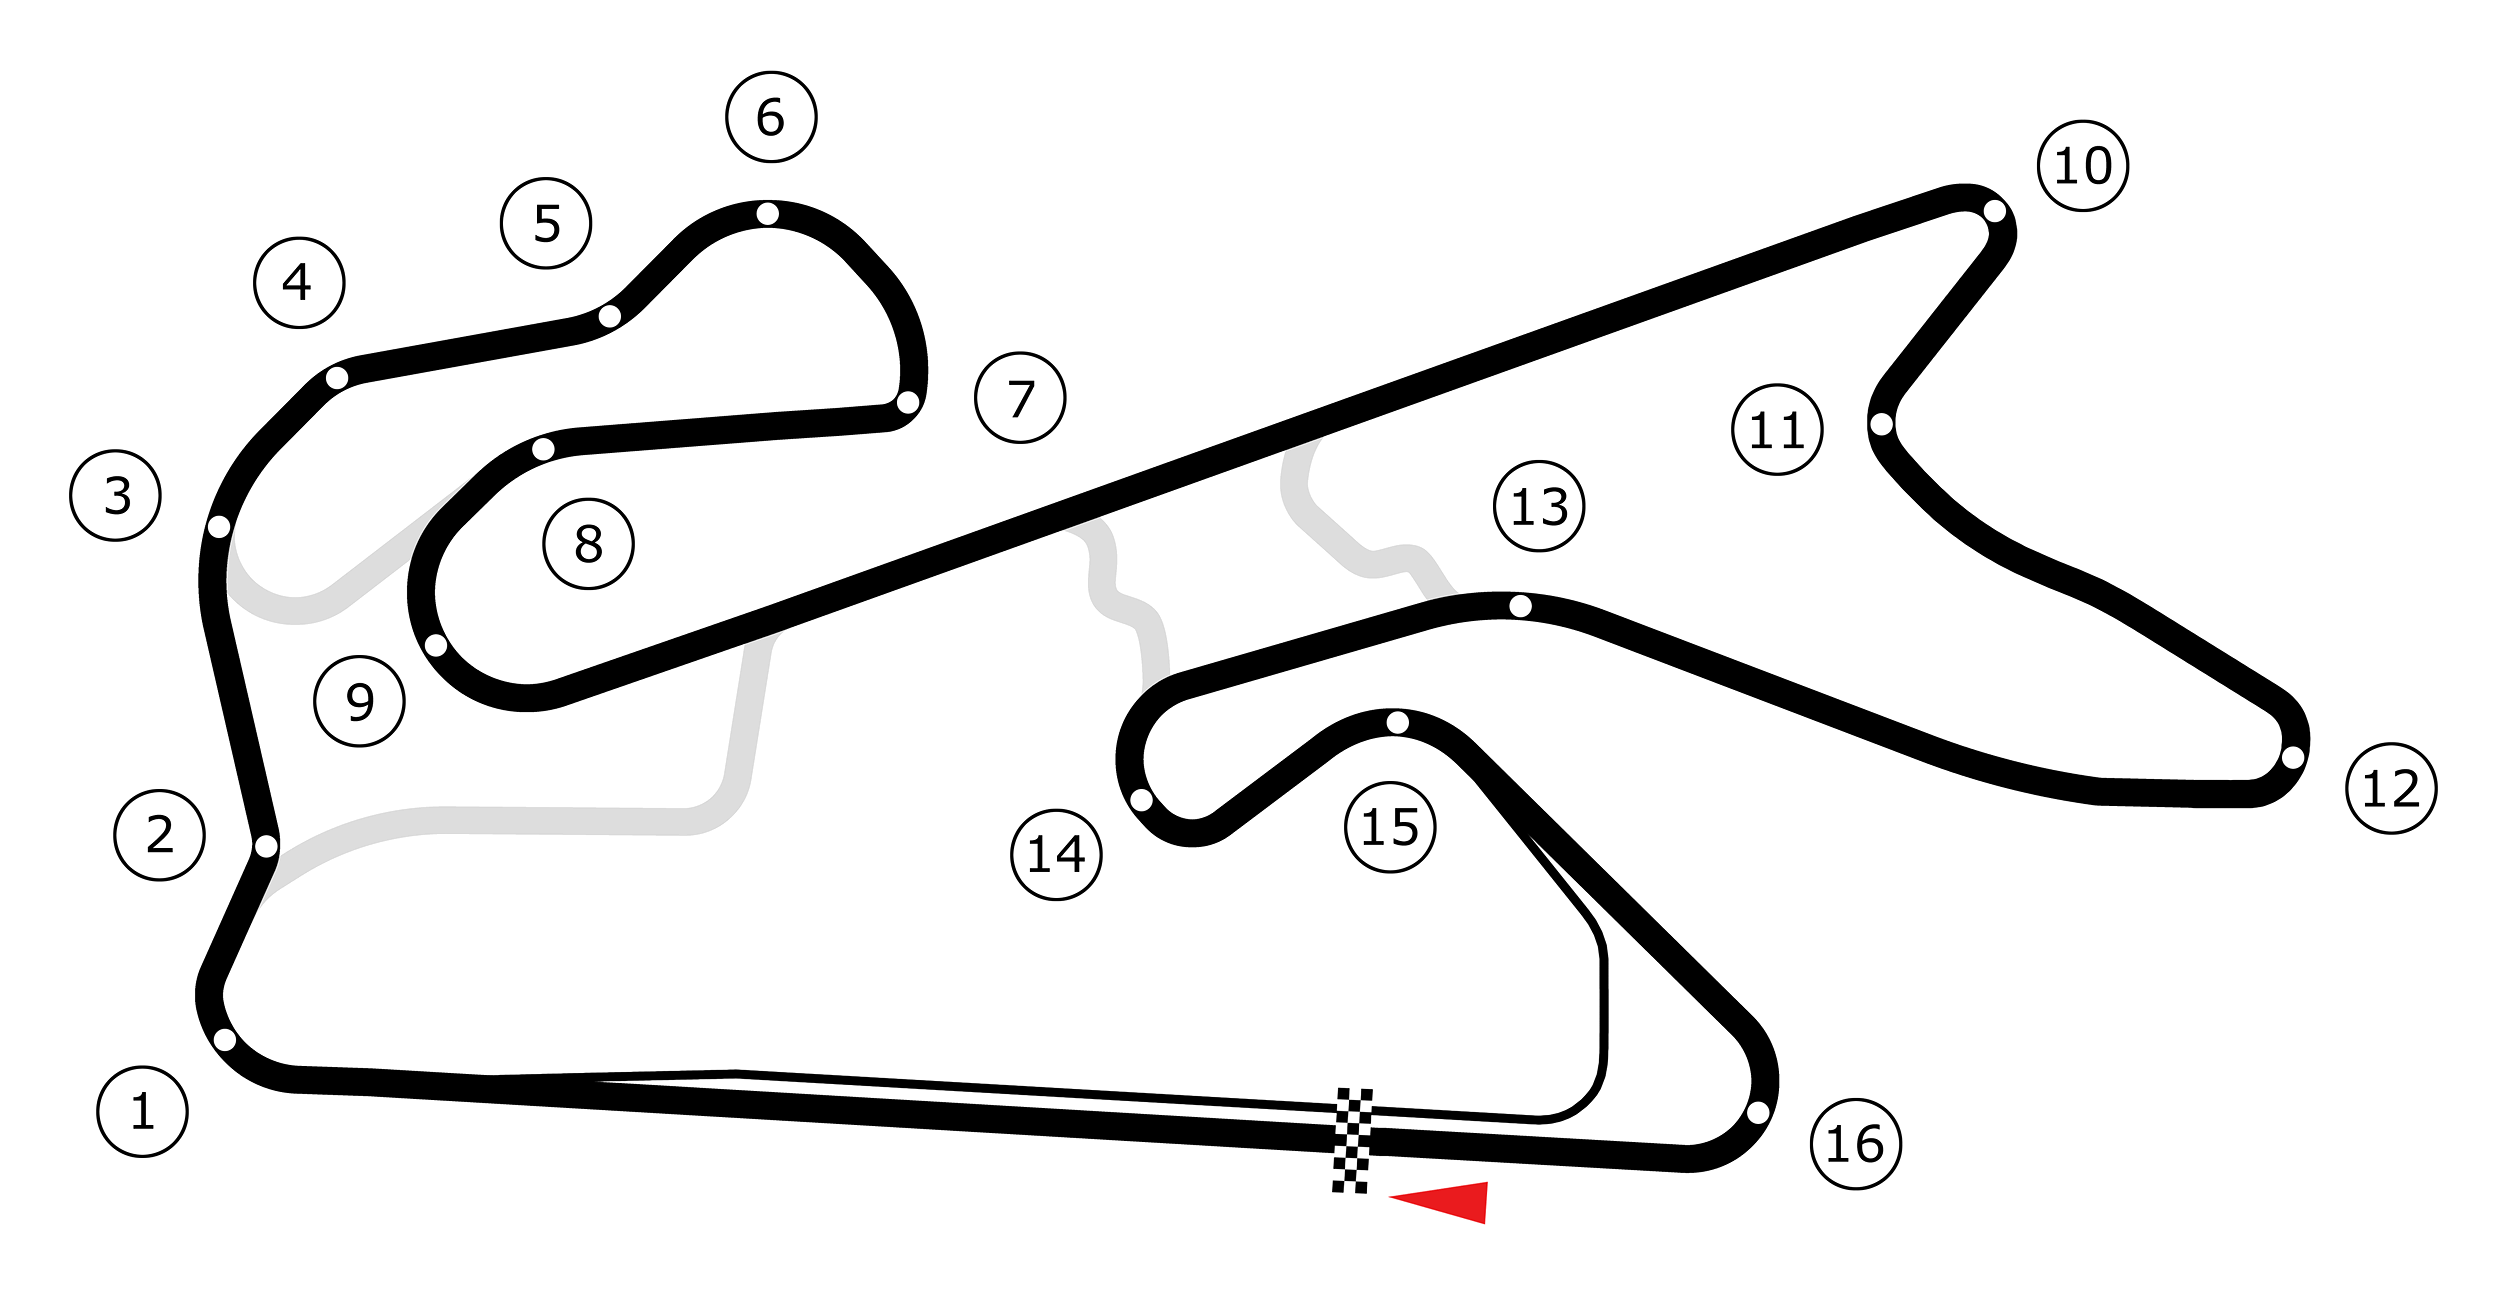 http://upload.wikimedia.org/wikipedia/commons/2/20/Dubai-autodrome.png